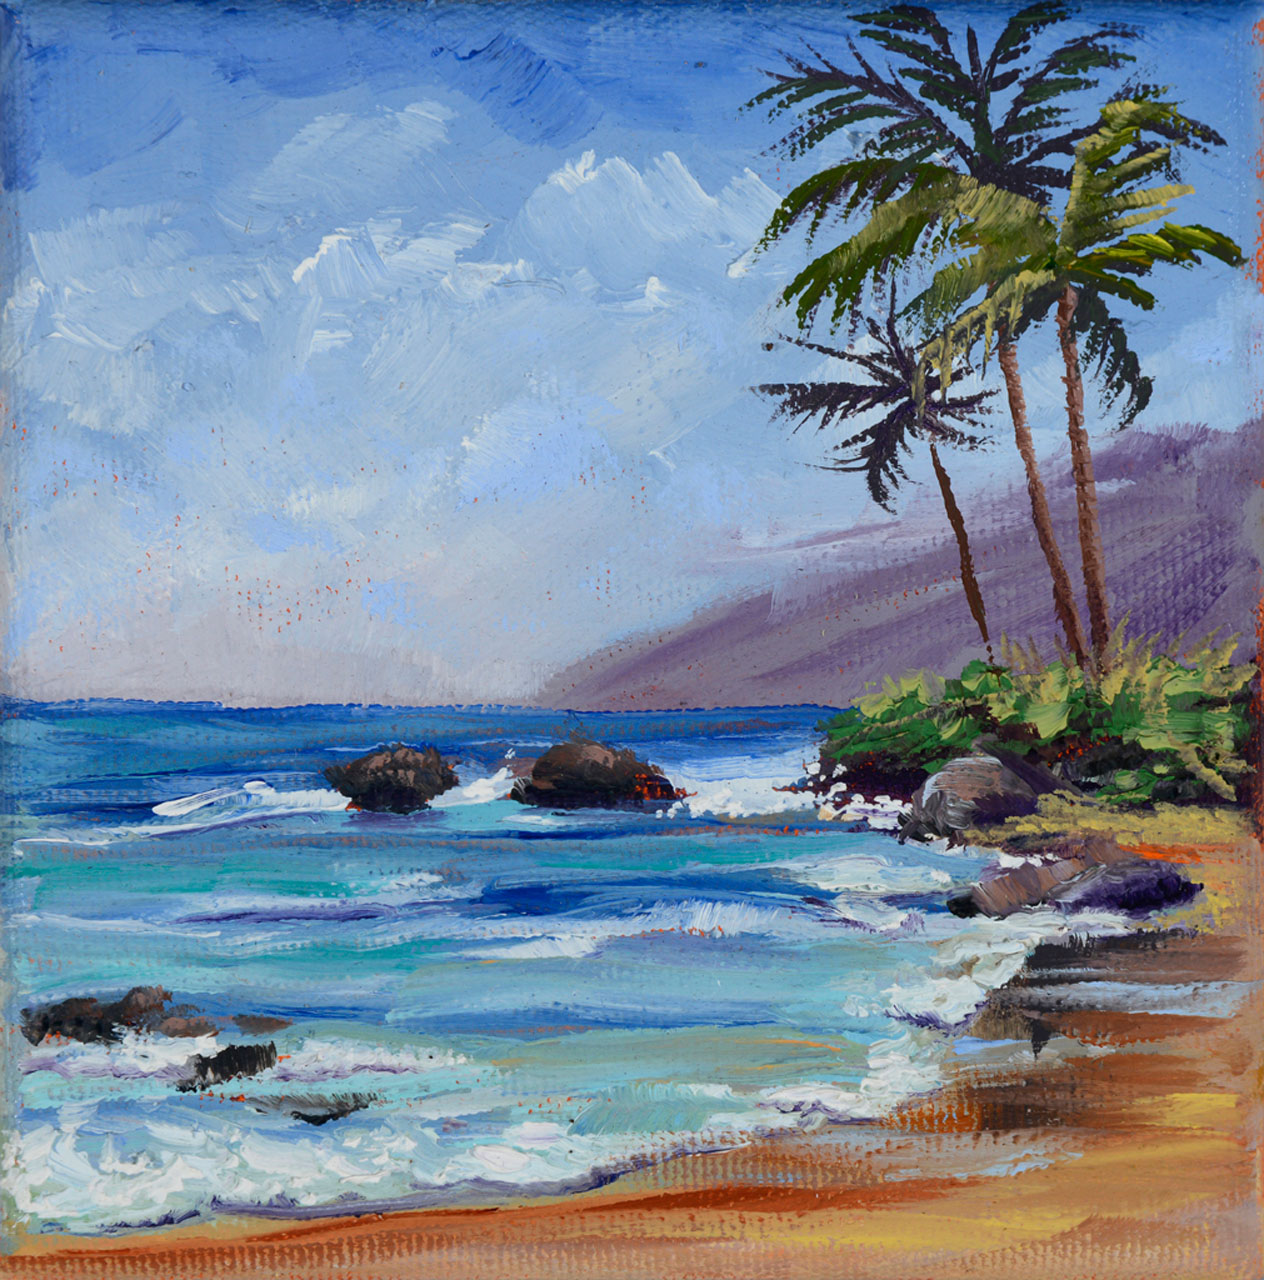 wailea polo beach 5x5 Oil on canvas Diane Snoey Appler